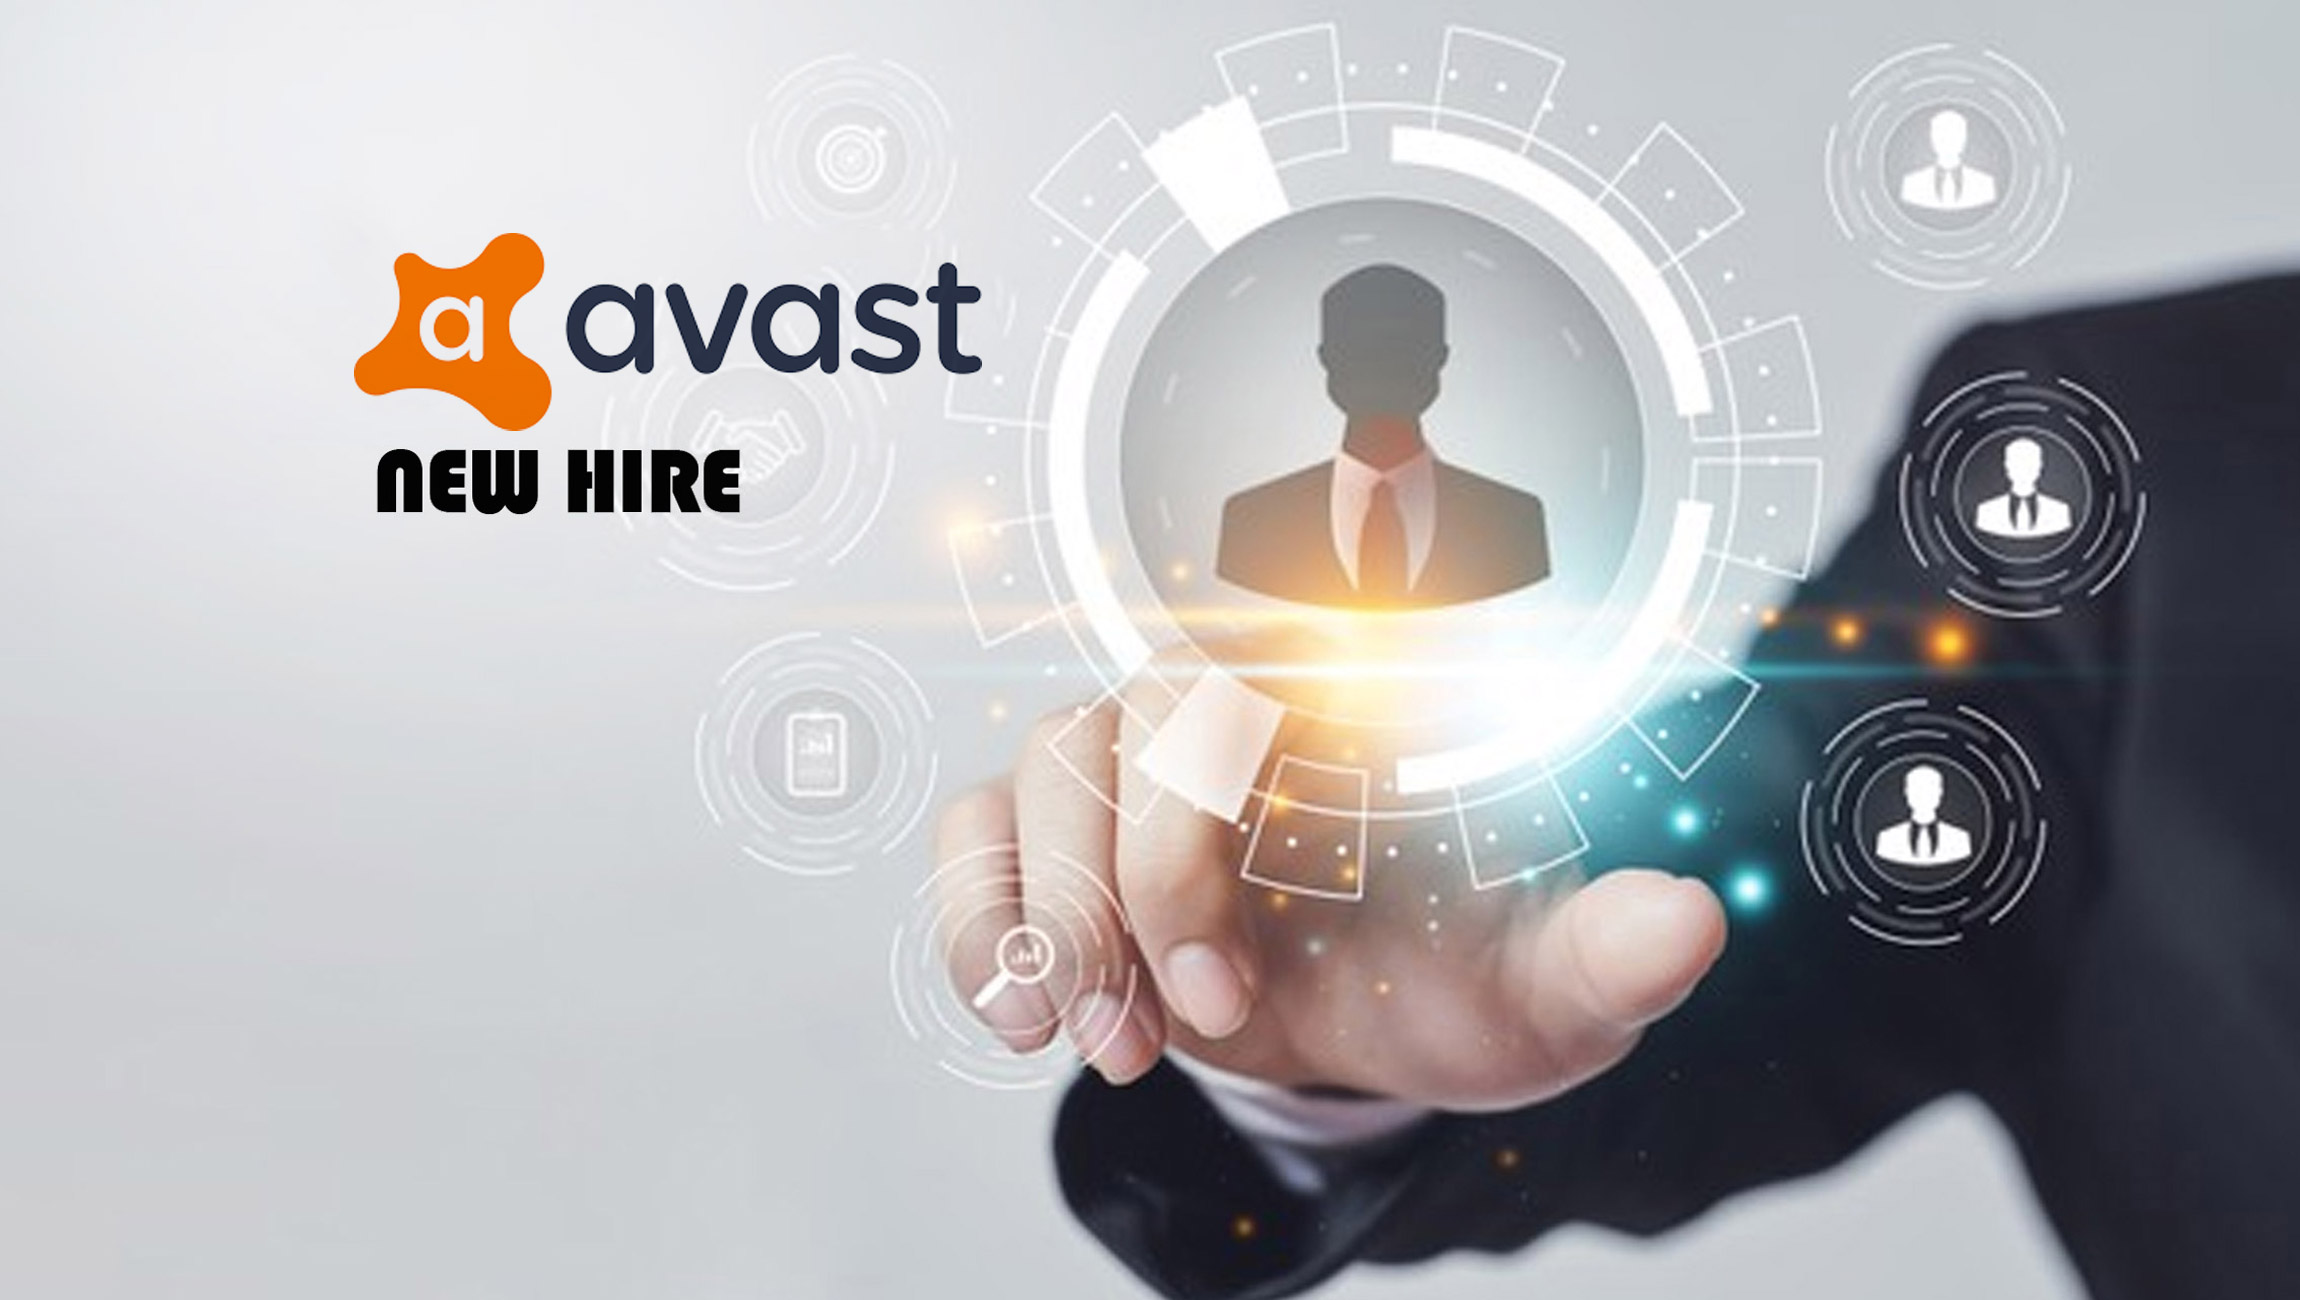 Avast Bolsters Expertise in Identity and M&A with Two New Appointments